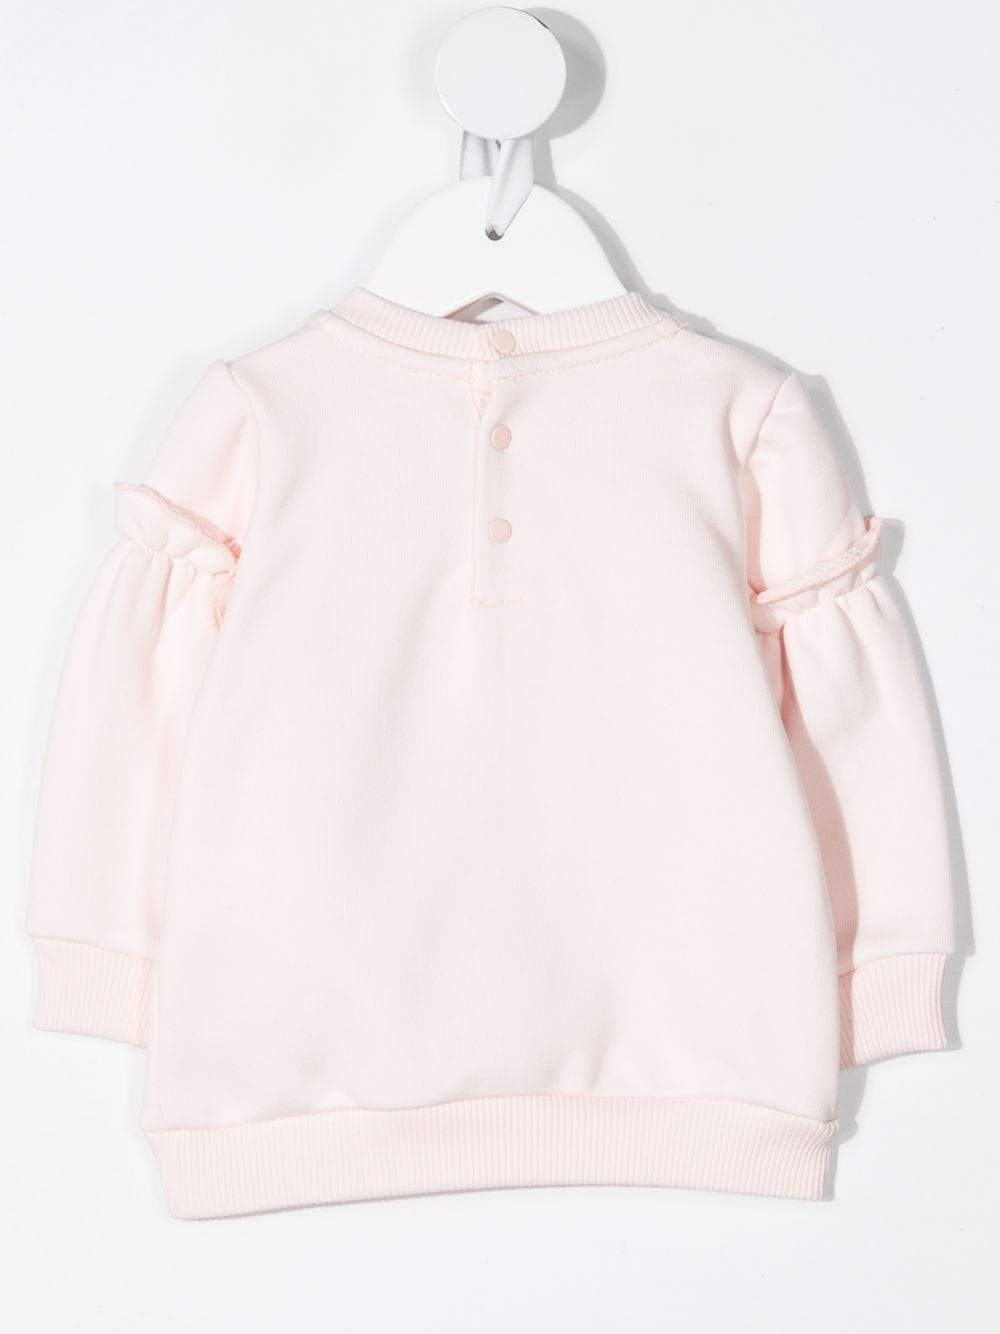 GIVENCHY BABY Holographic Logo Print Sweatshirt Pink